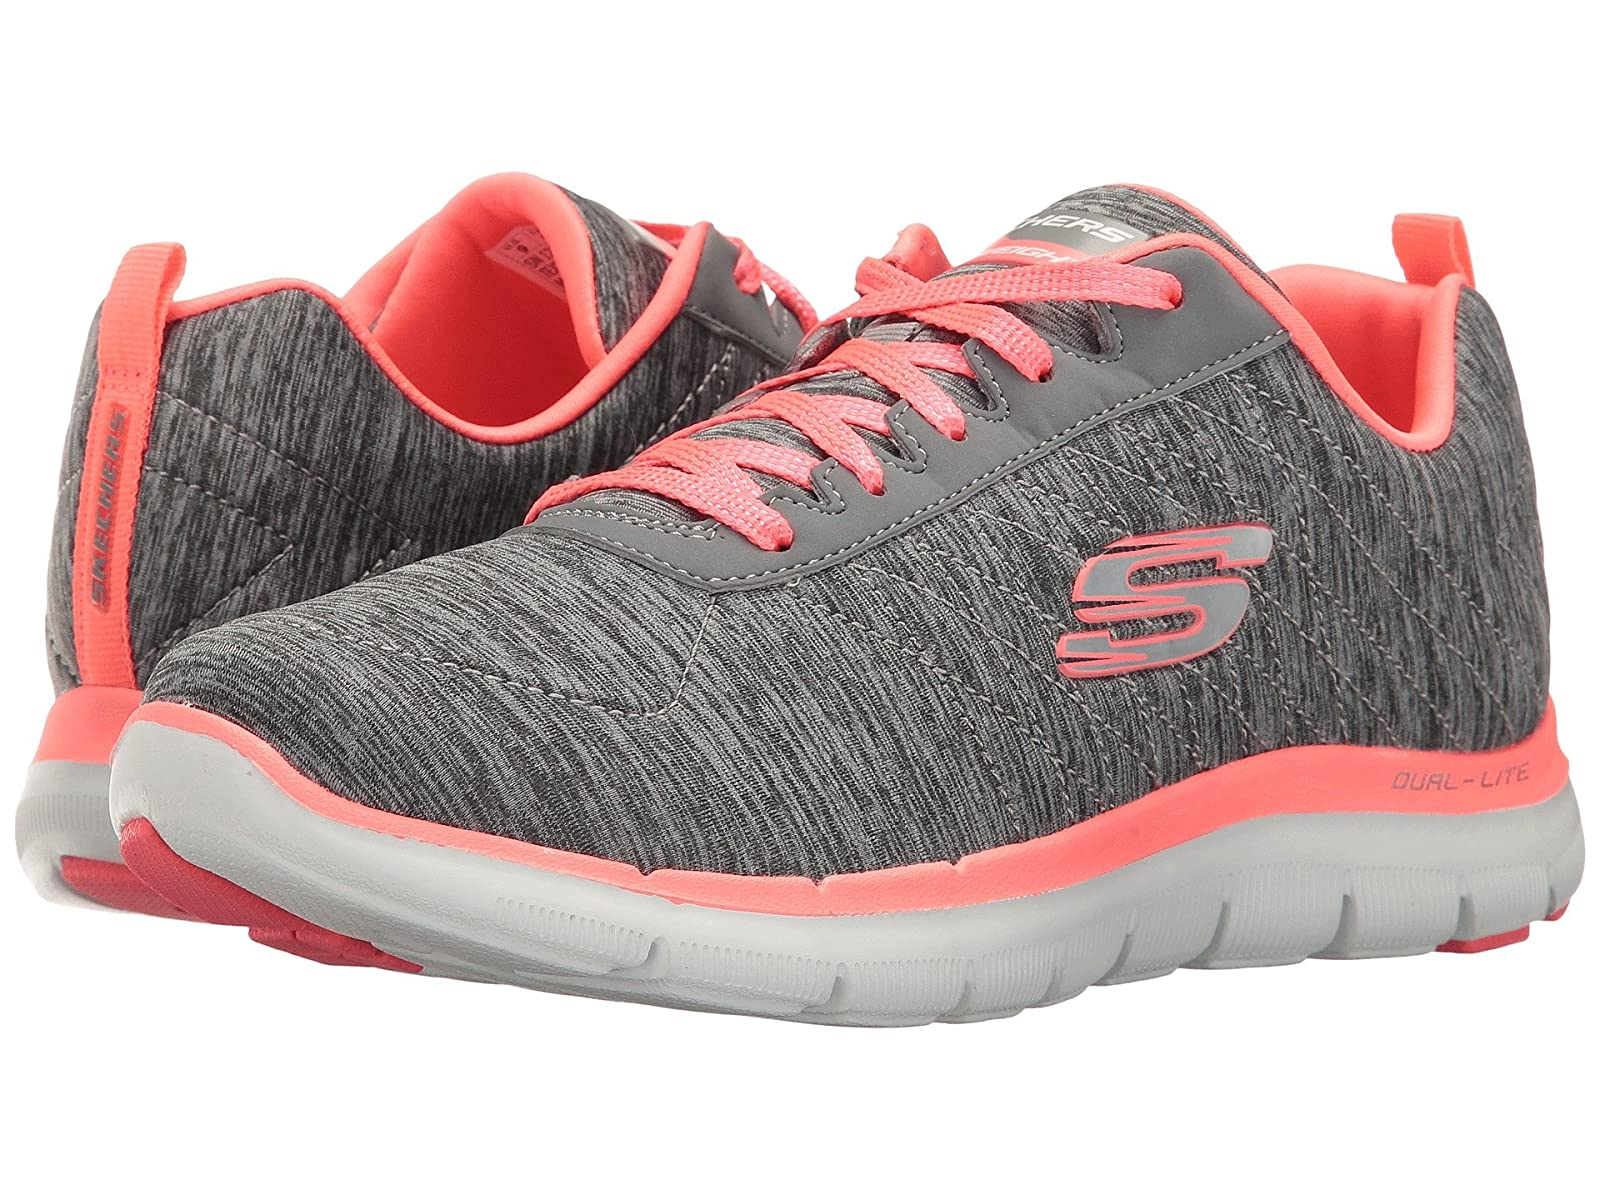 SKECHERS Flex Appeal 2.0Cheap and distinctive eye-catching shoes